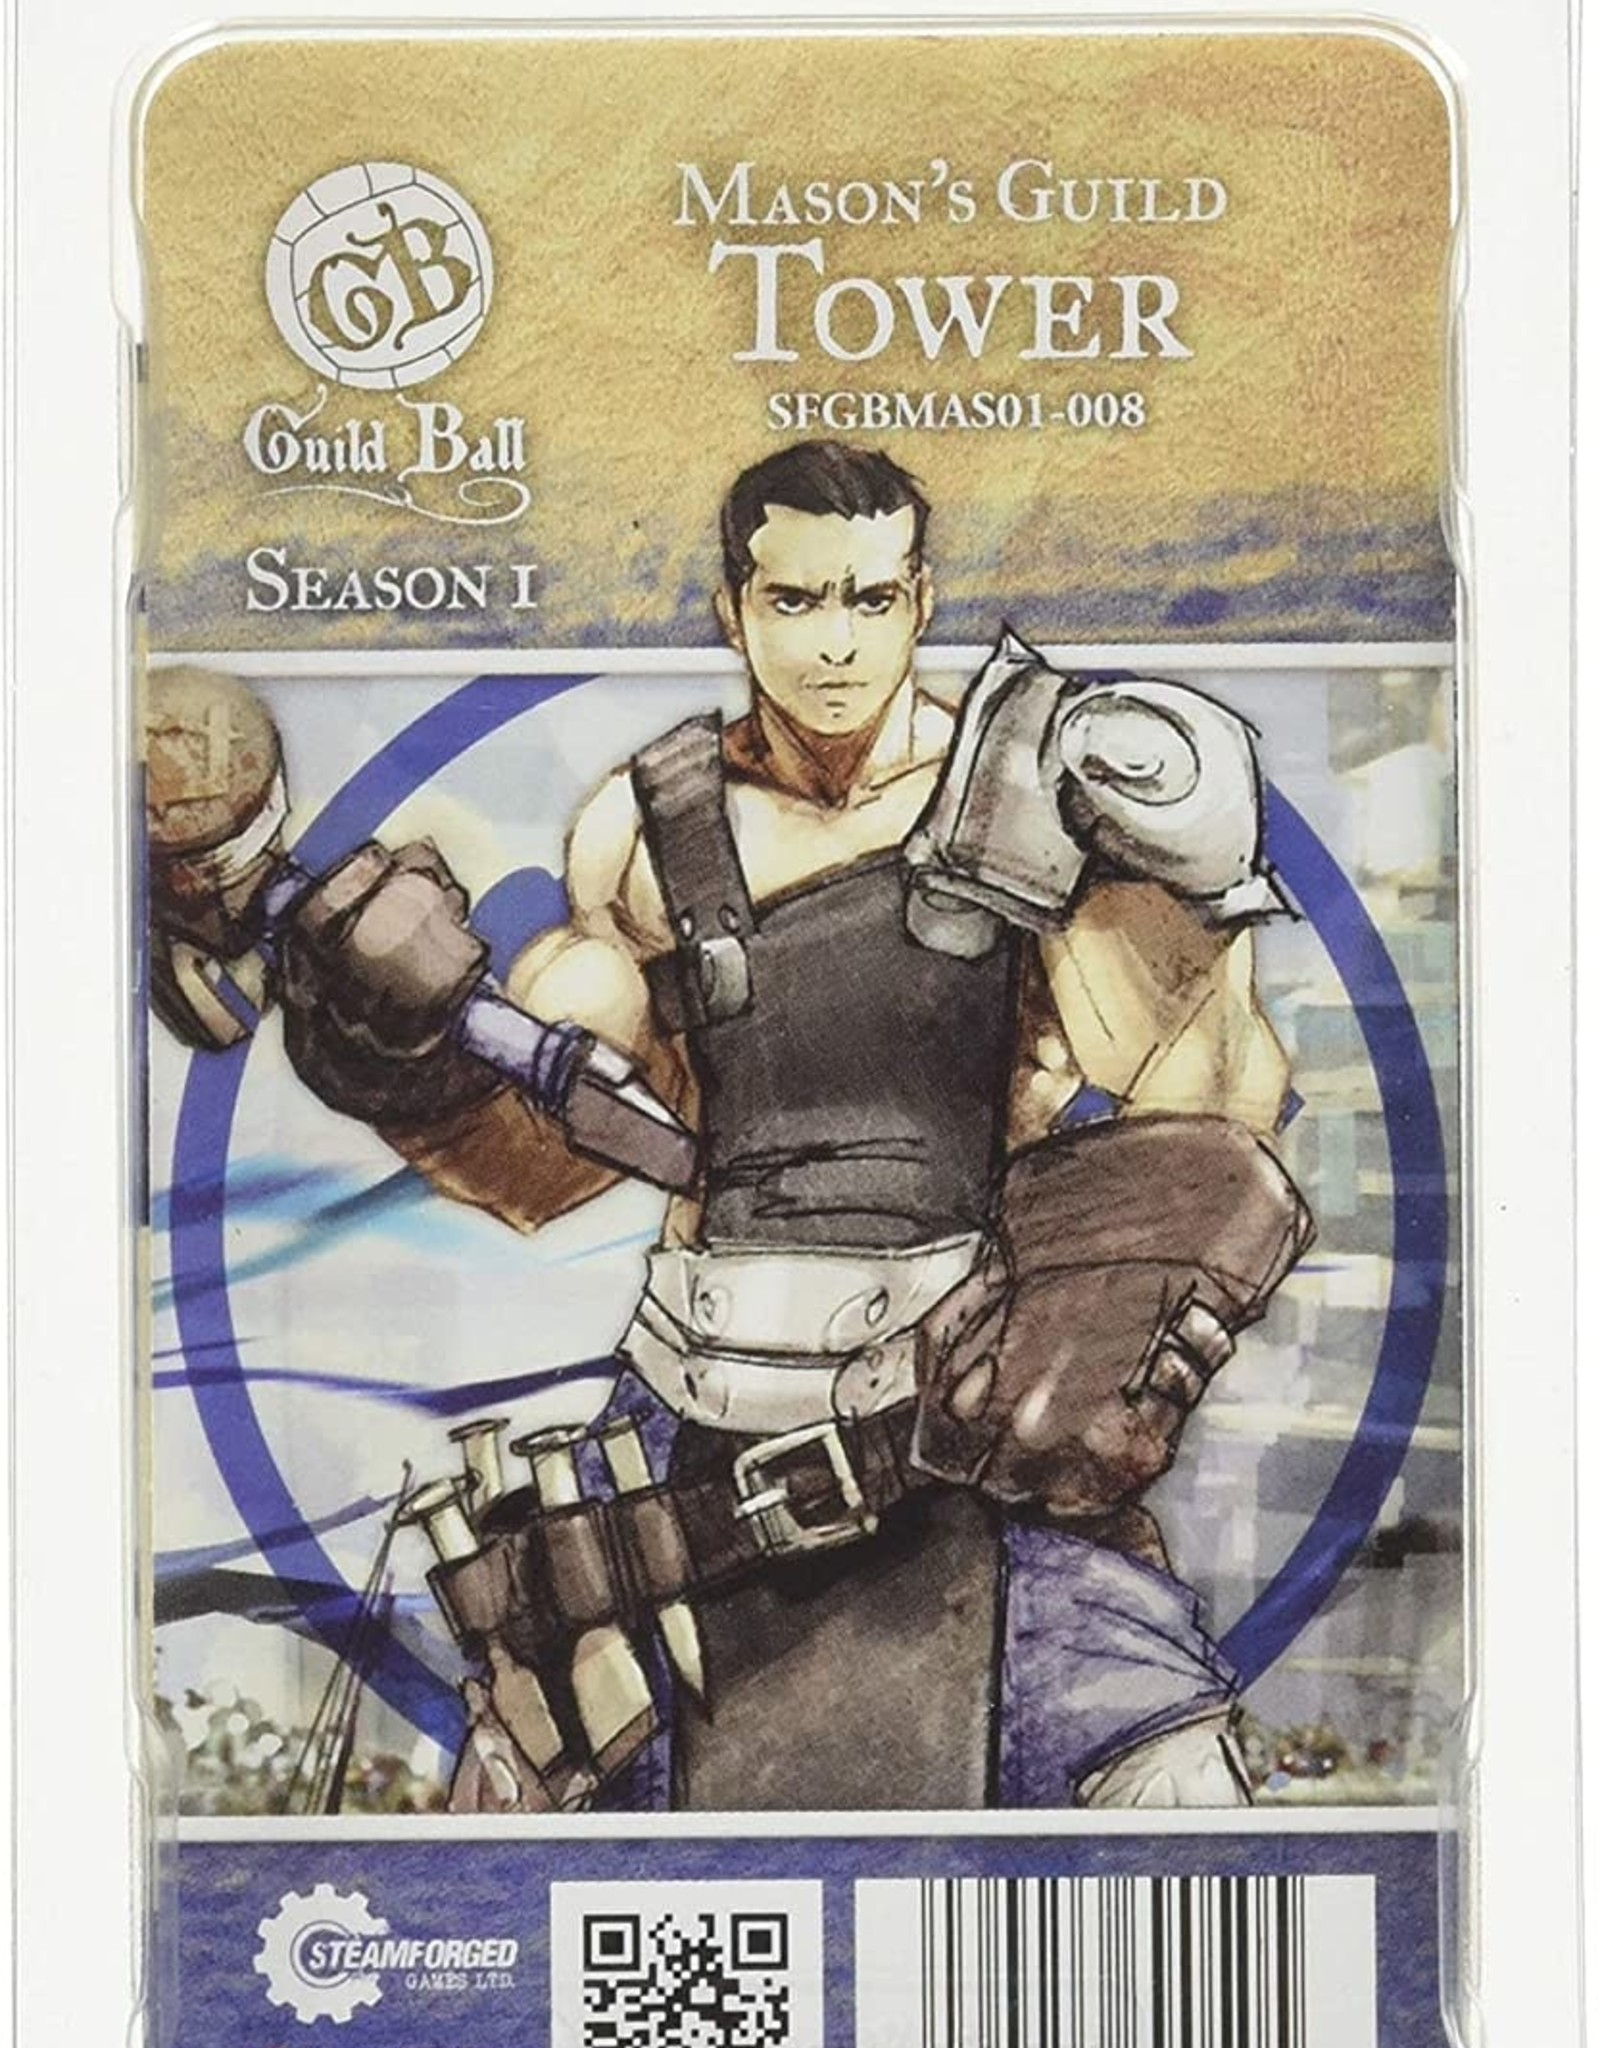 Guild Ball GB - Masons: Tower